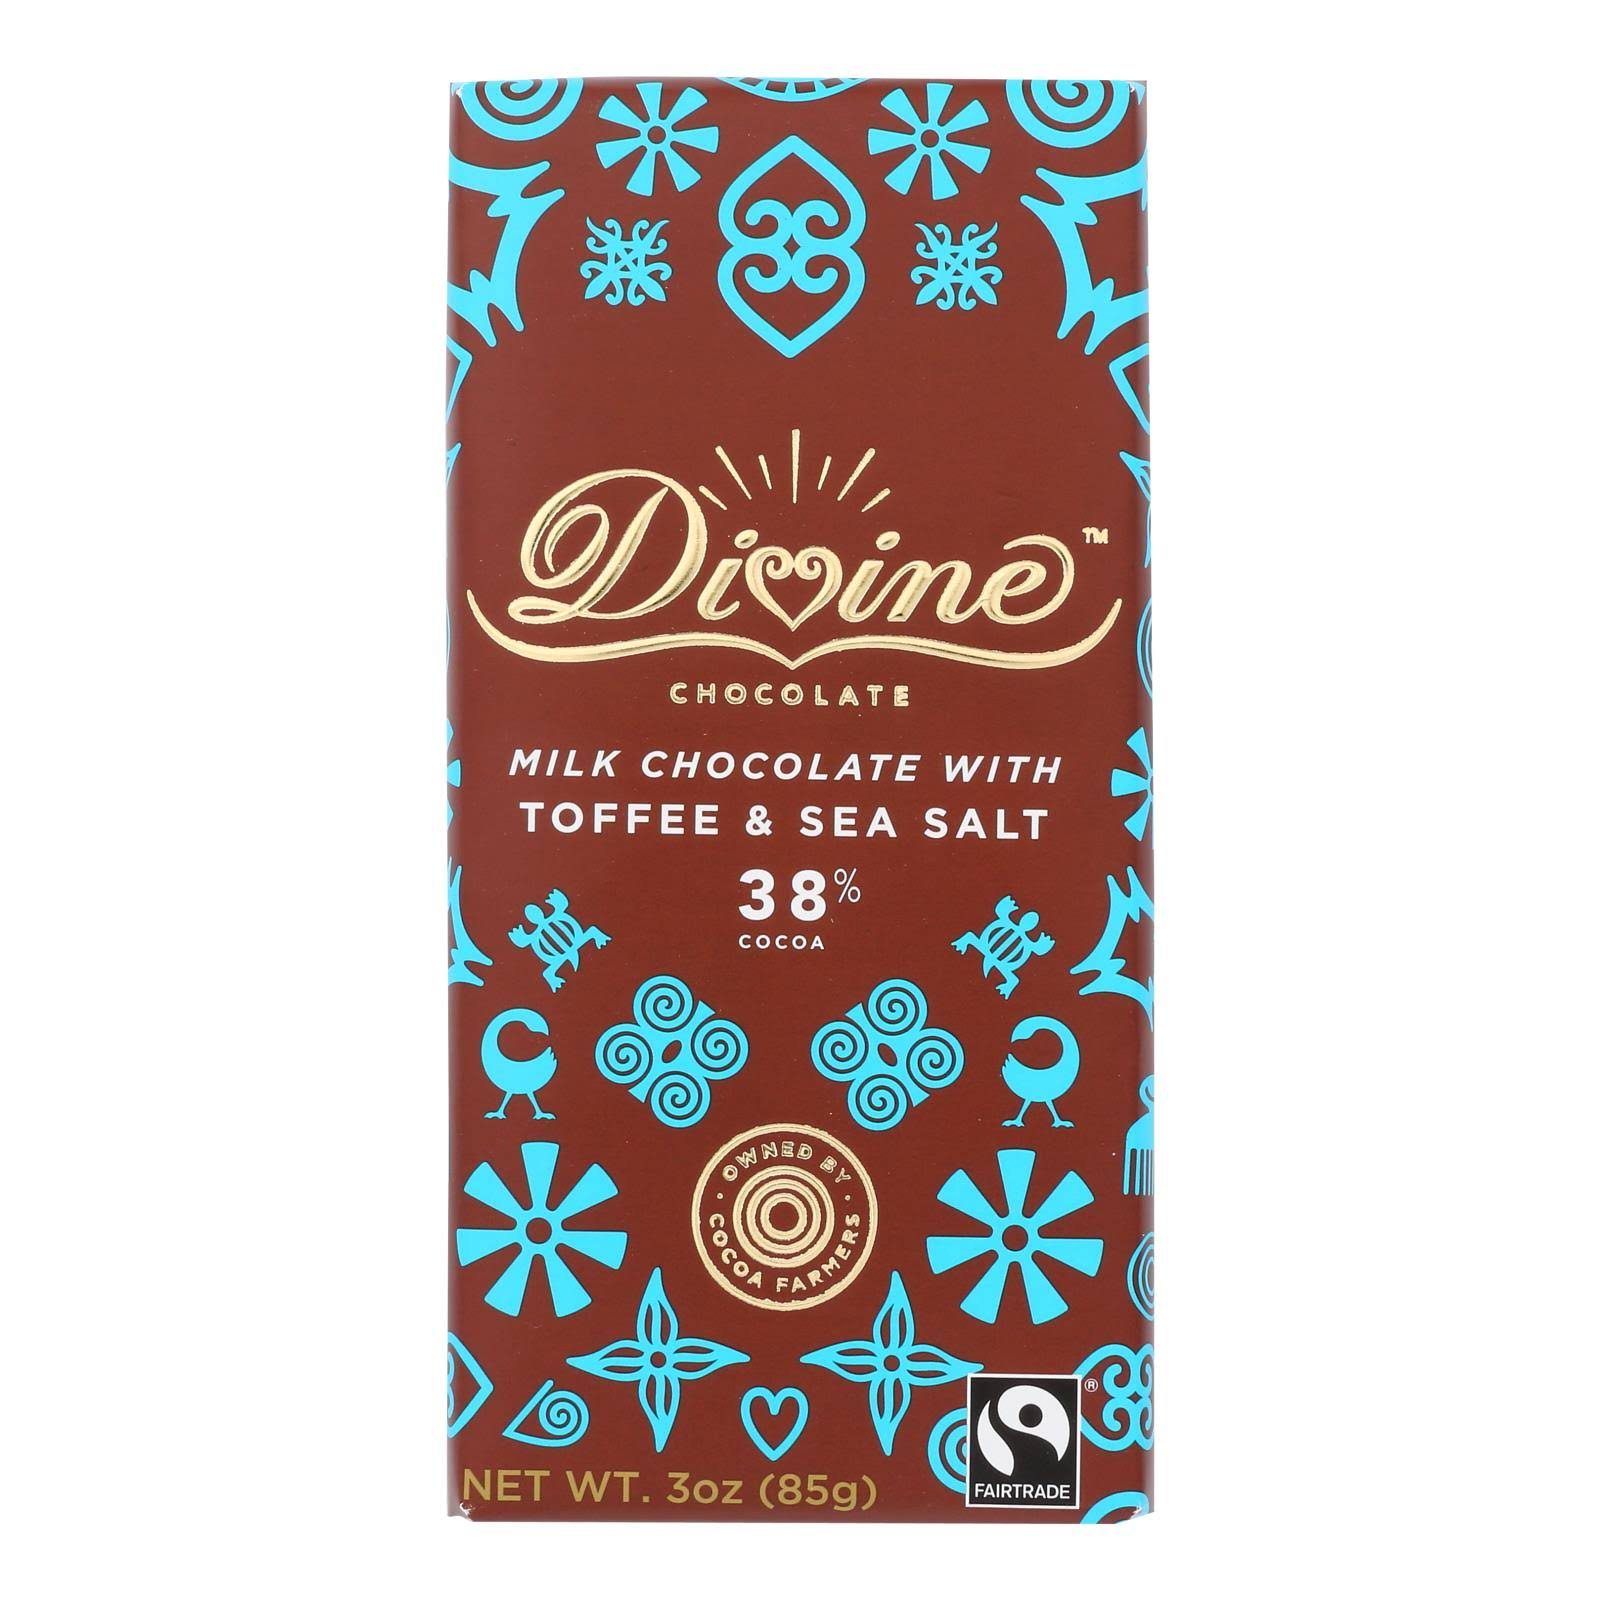 Divine Milk Chocolate - Toffee & Sea Salt, 3oz